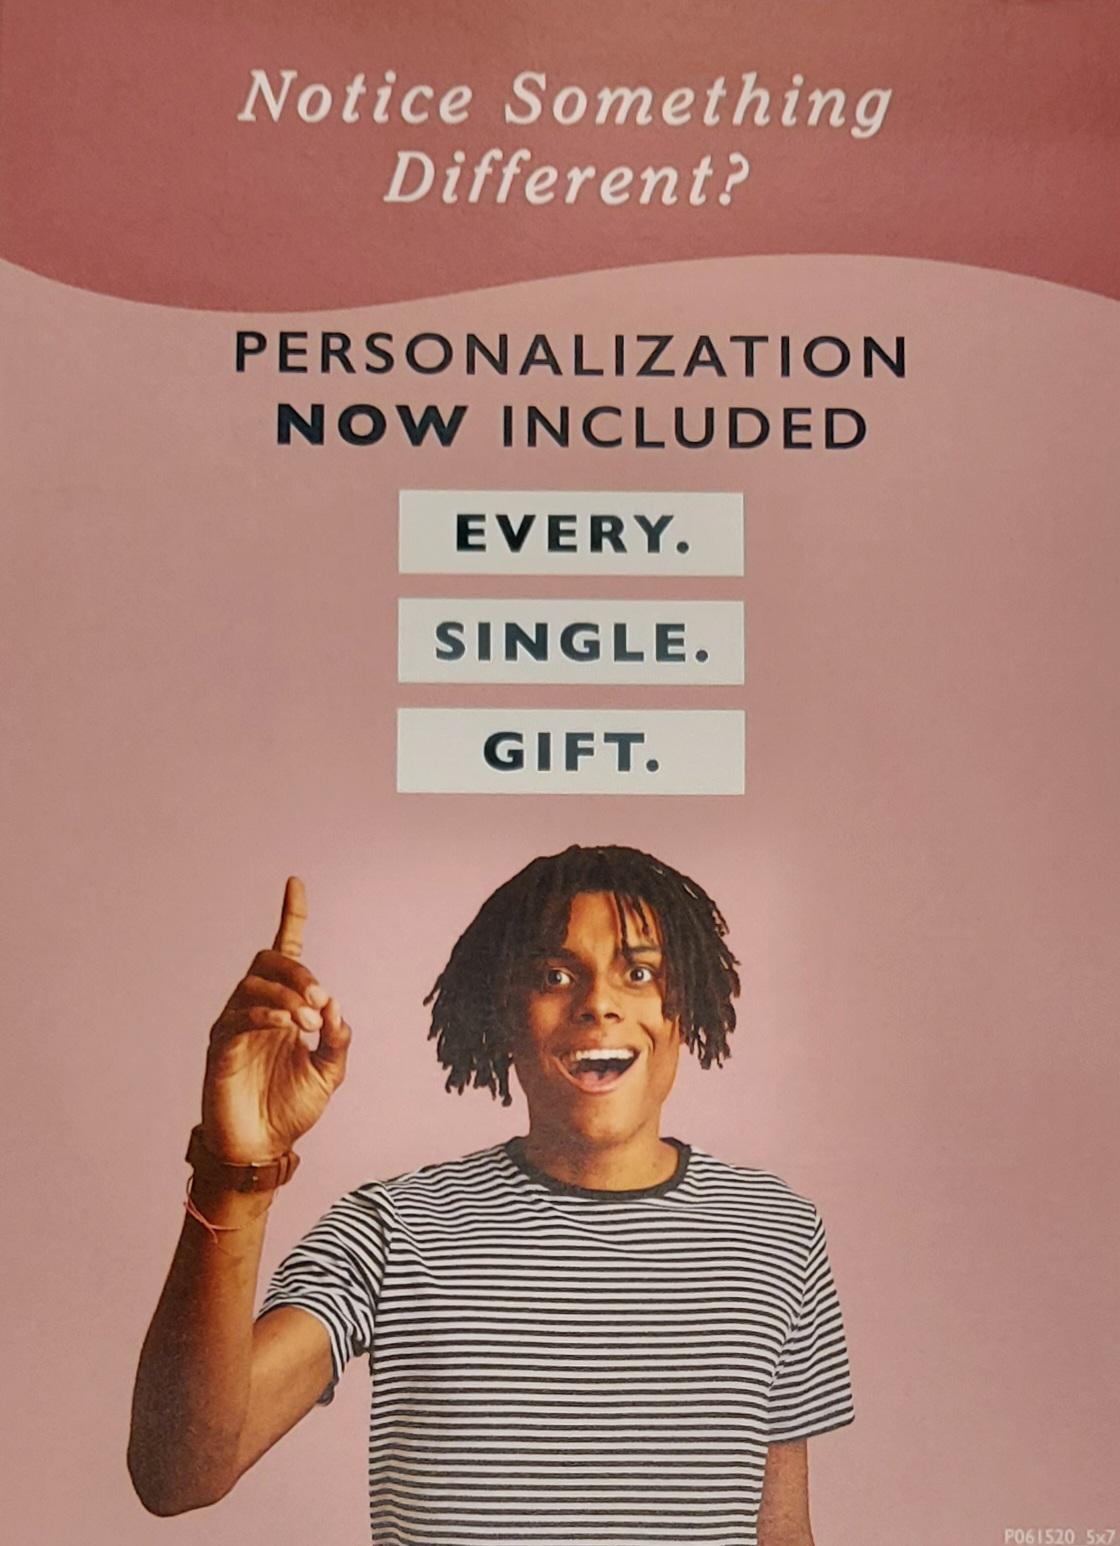 Personalization Now Included! from Things Remembered